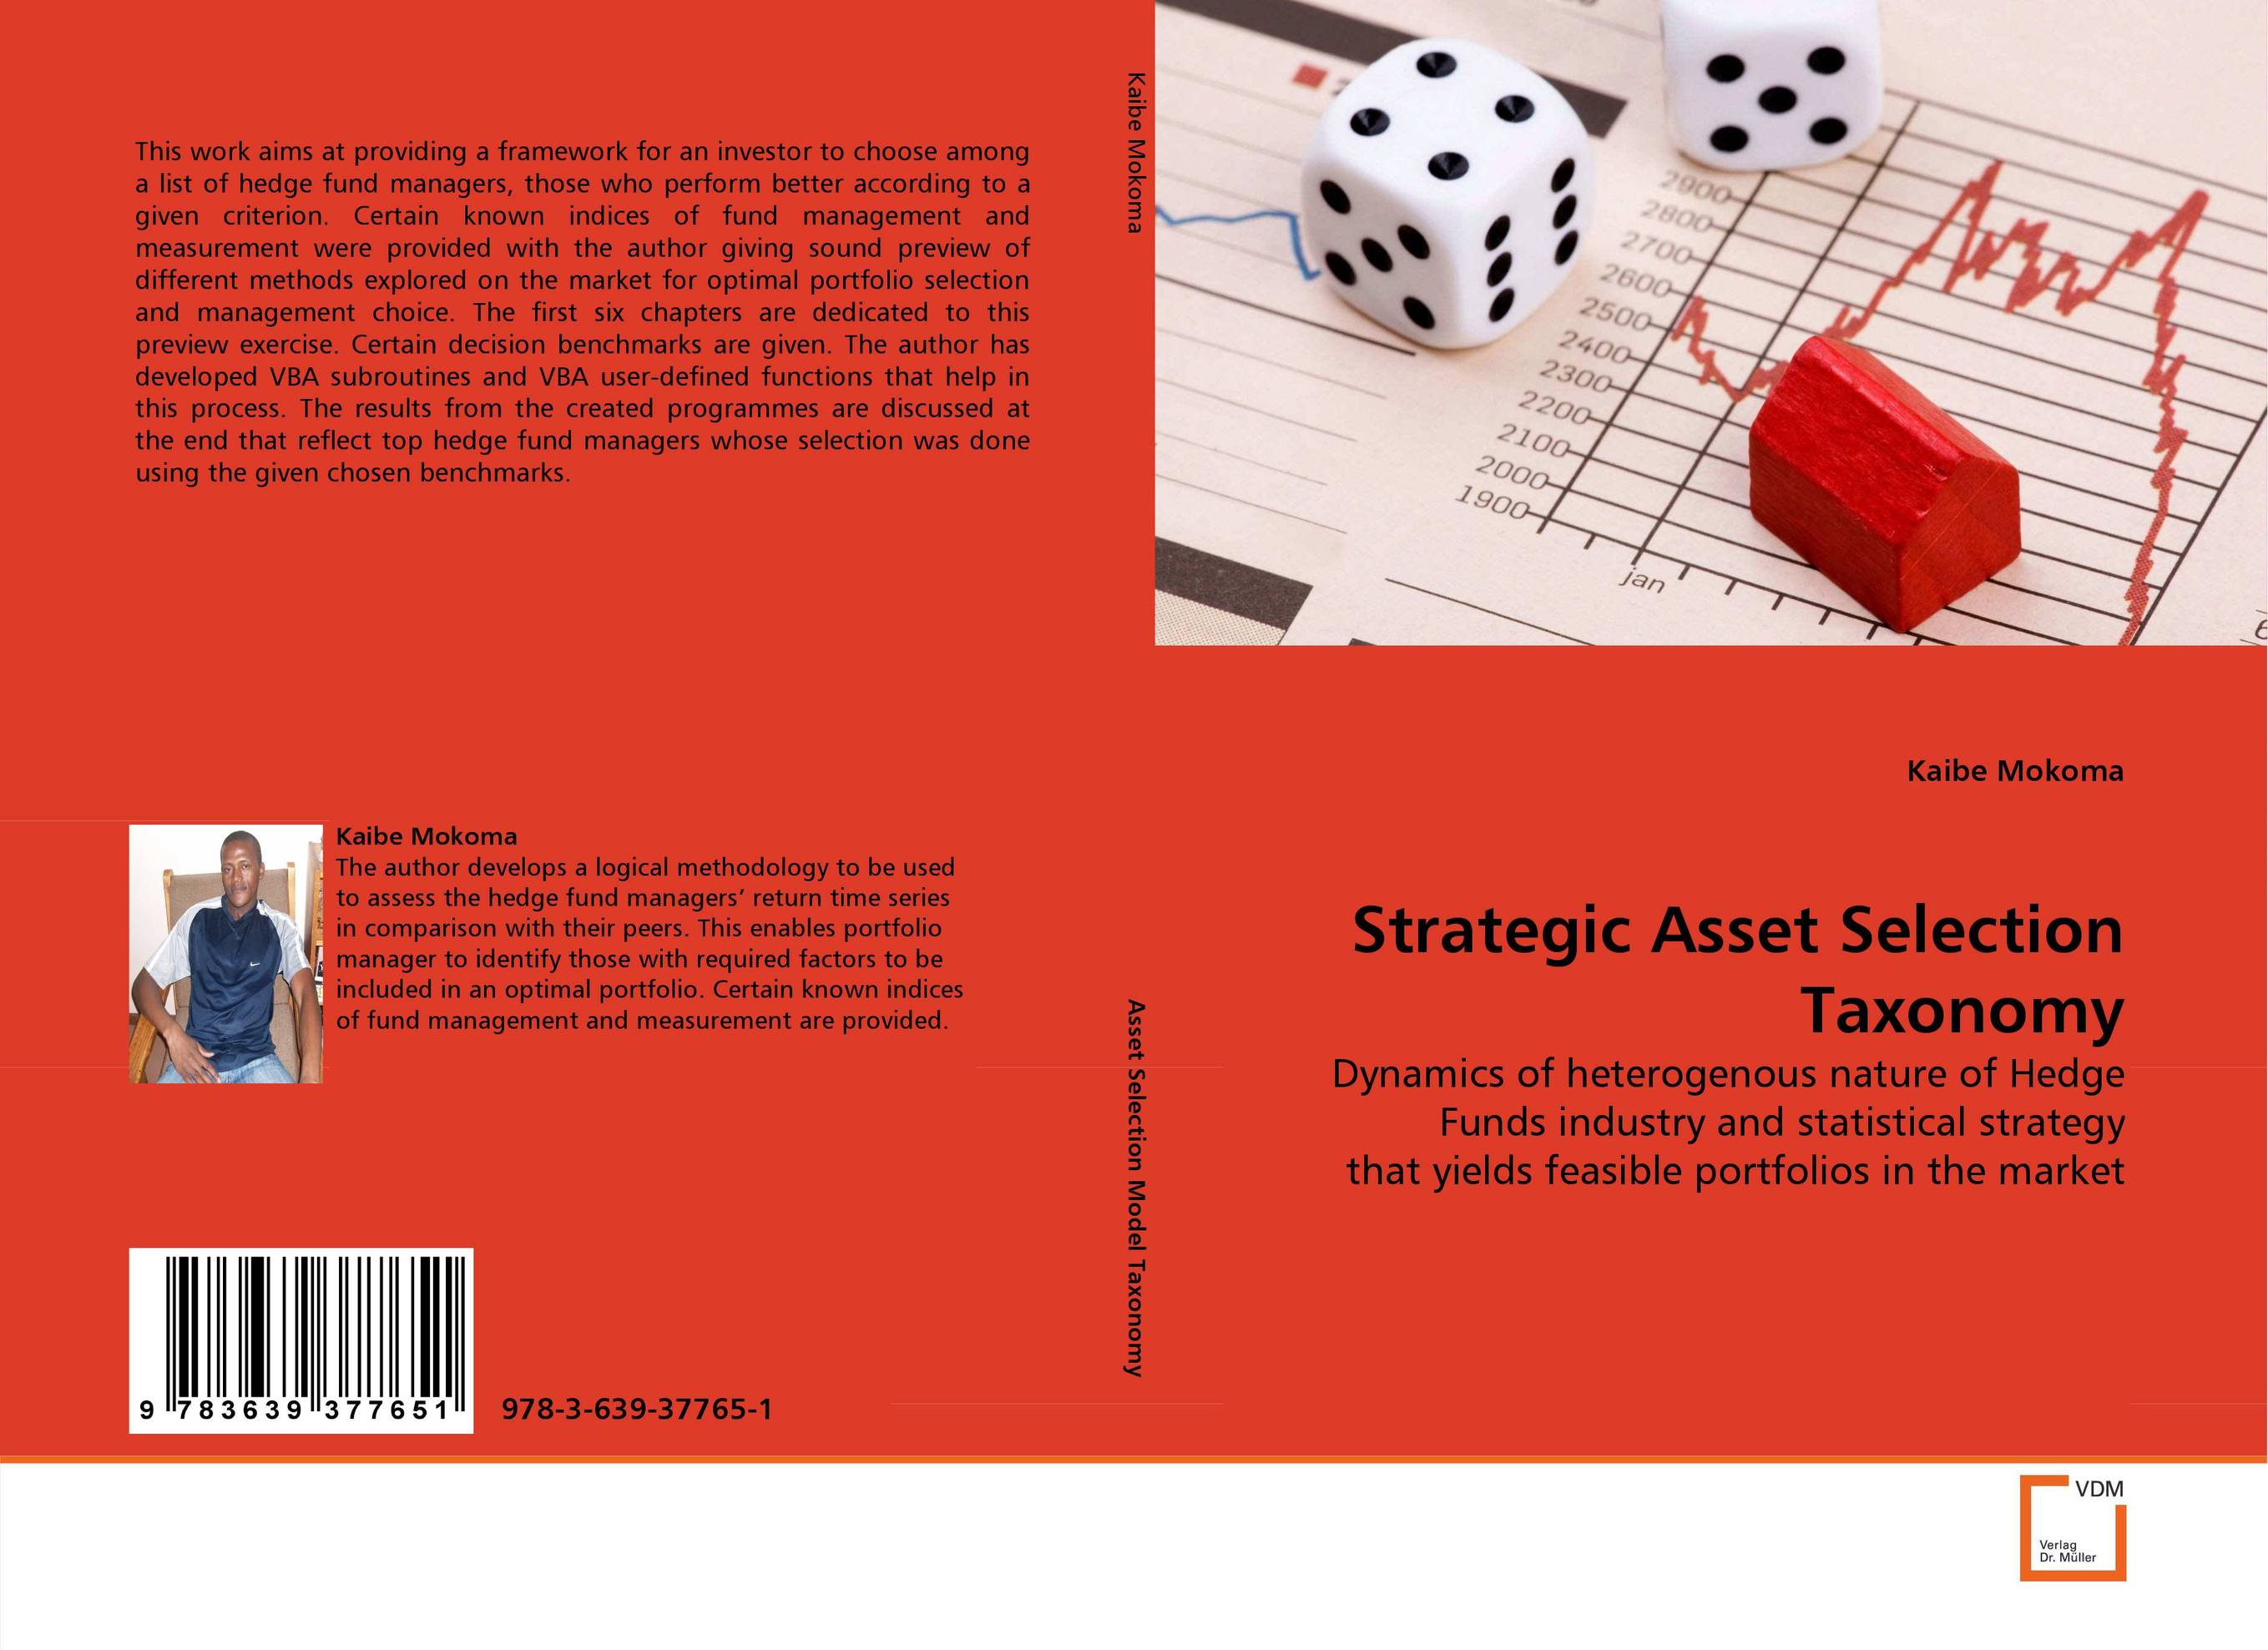 Strategic Asset Selection Taxonomy daniel strachman a the fundamentals of hedge fund management how to successfully launch and operate a hedge fund